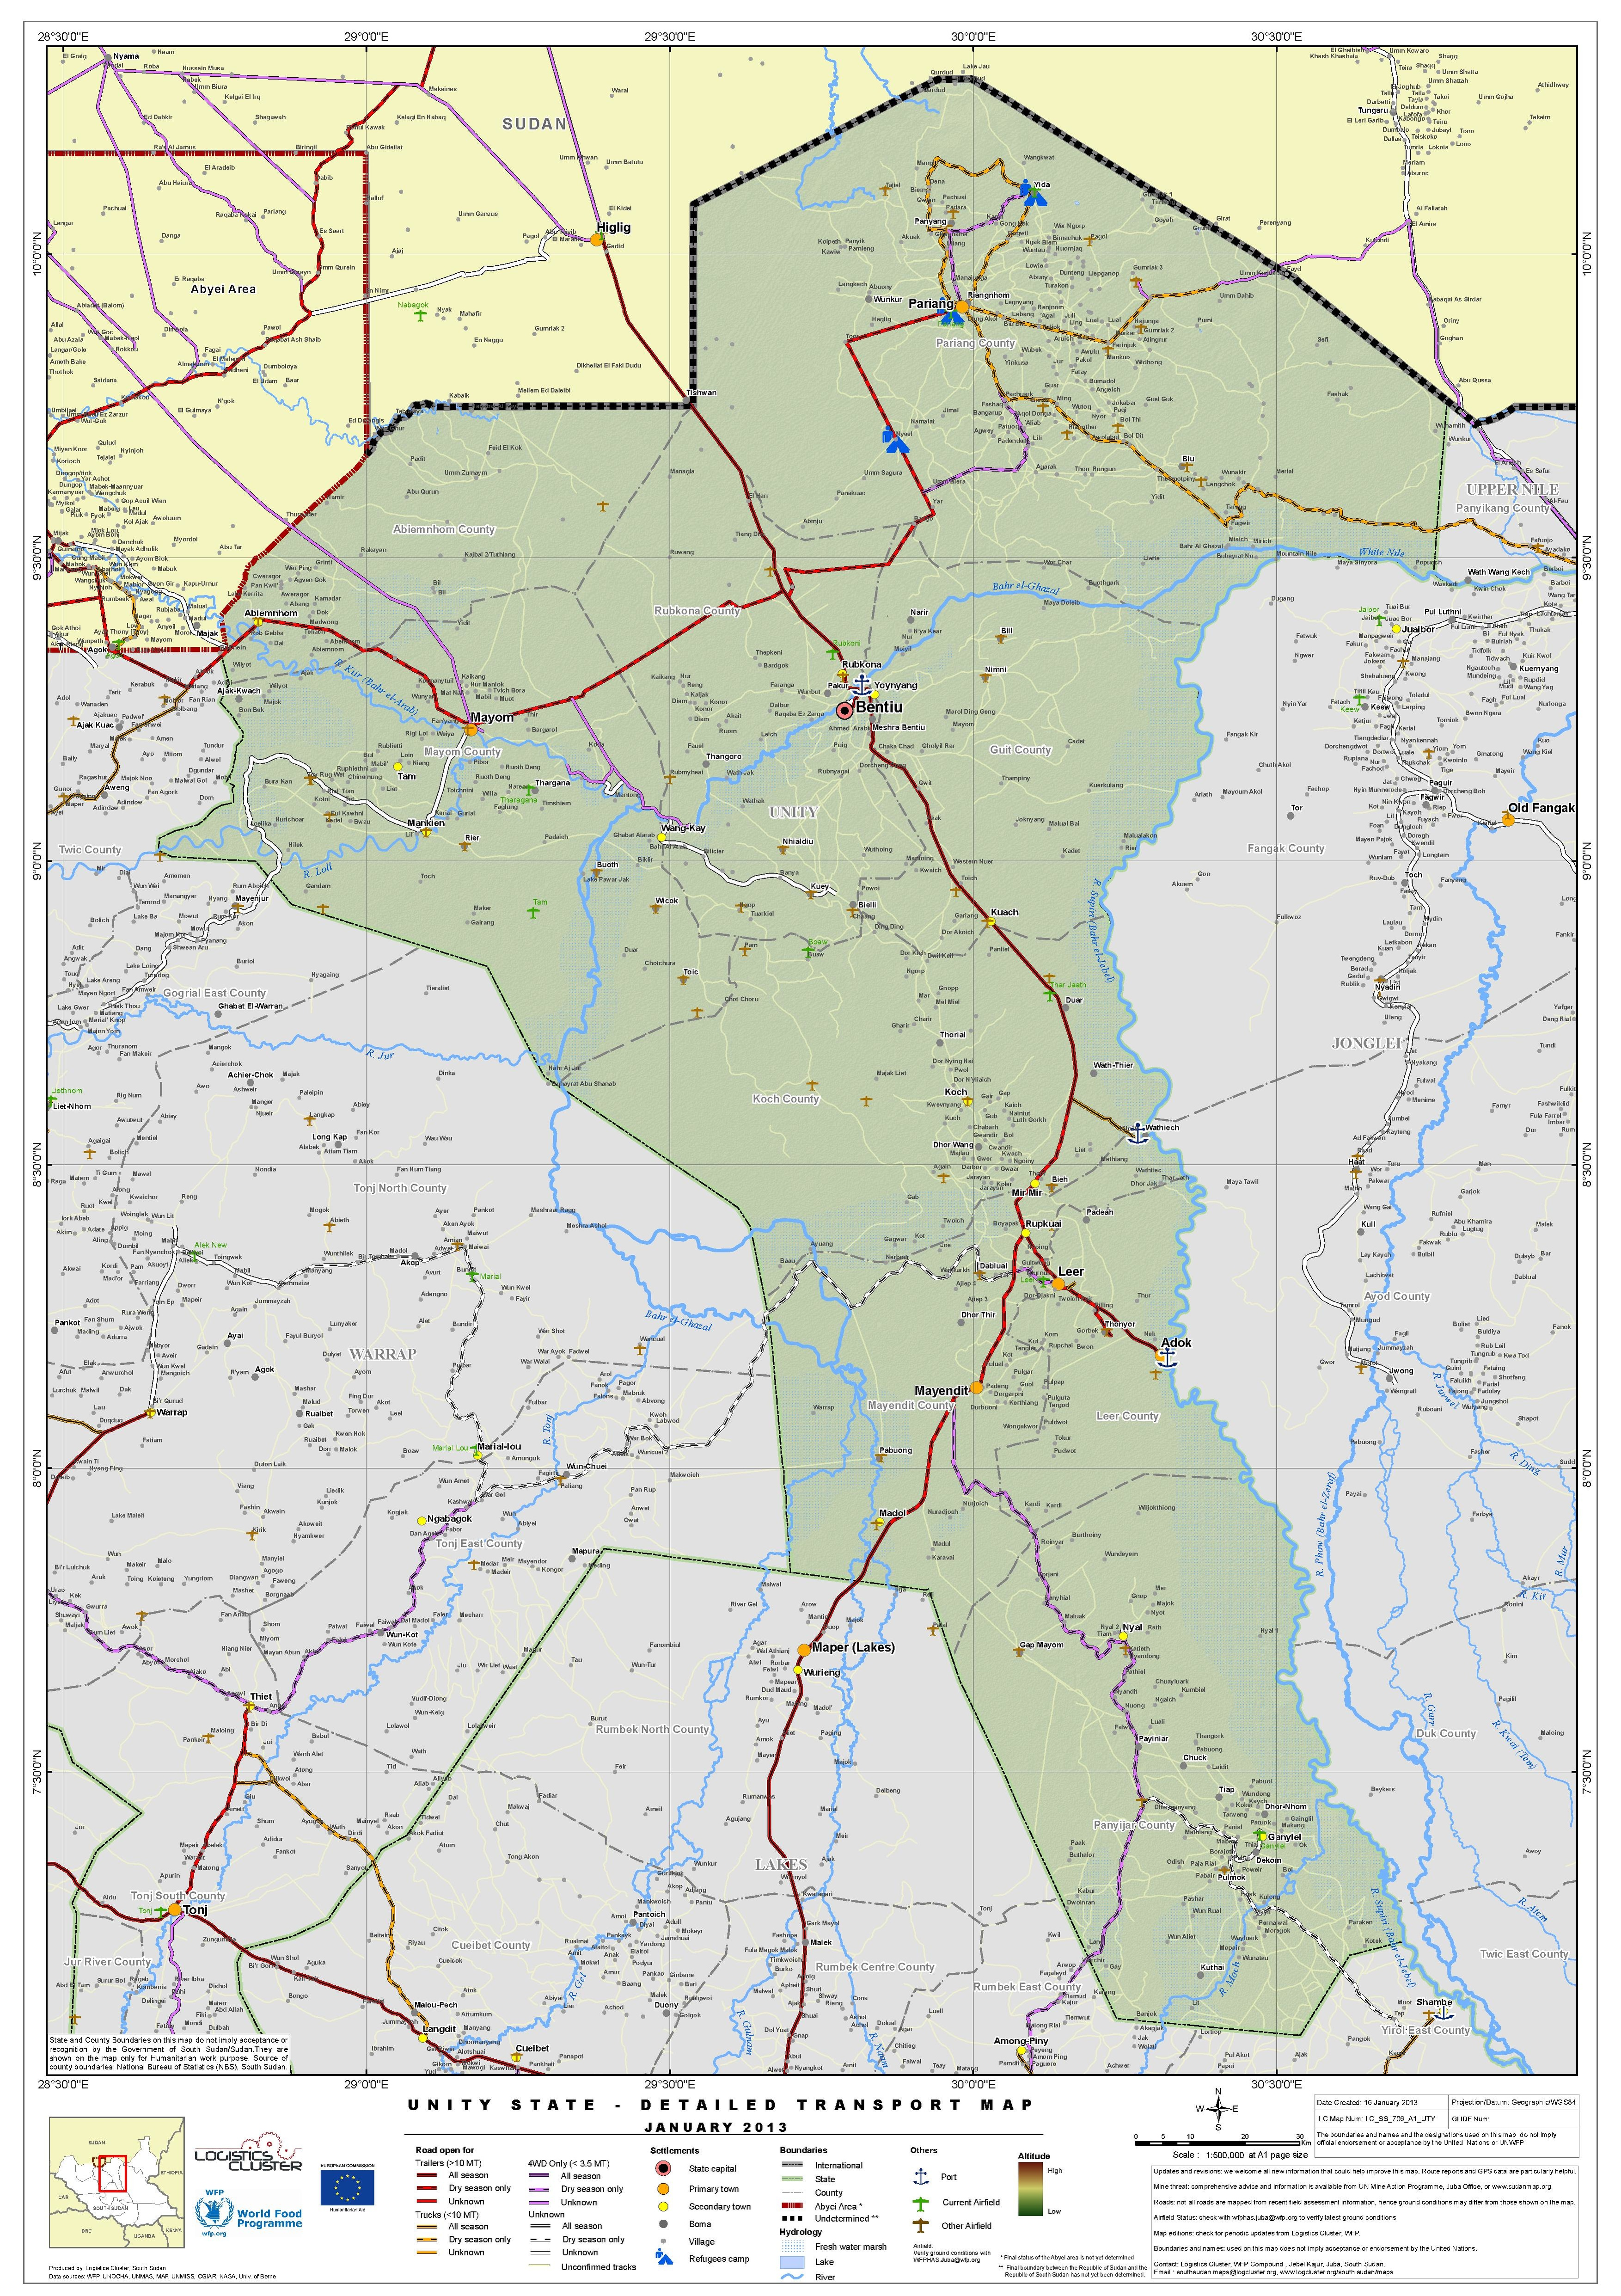 Filesouth sudan unity state detailed transport map jan 2013pdf filesouth sudan unity state detailed transport map jan 2013pdf gumiabroncs Image collections